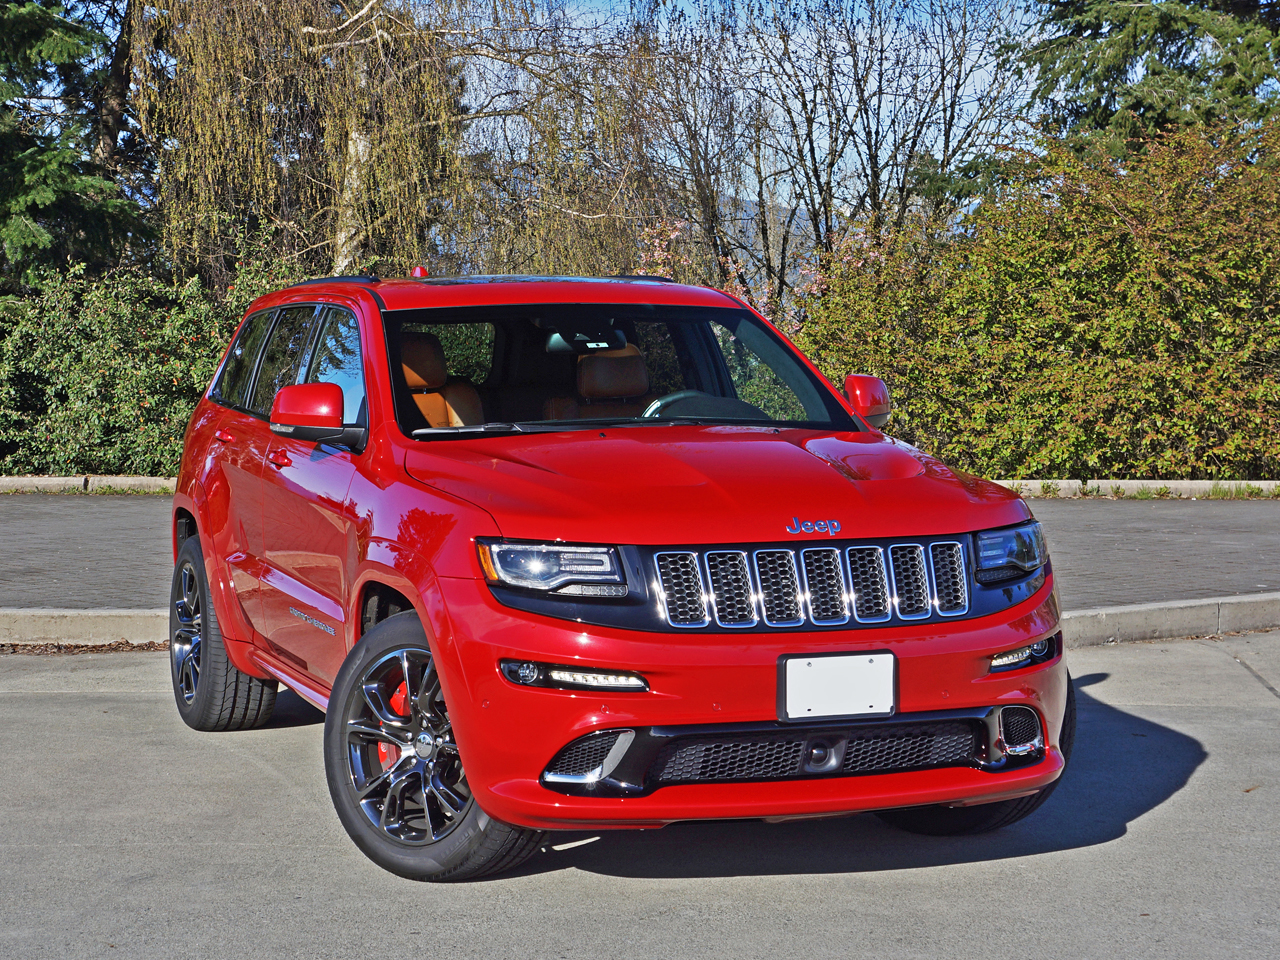 2016 jeep grand cherokee srt road test review carcostcanada. Black Bedroom Furniture Sets. Home Design Ideas